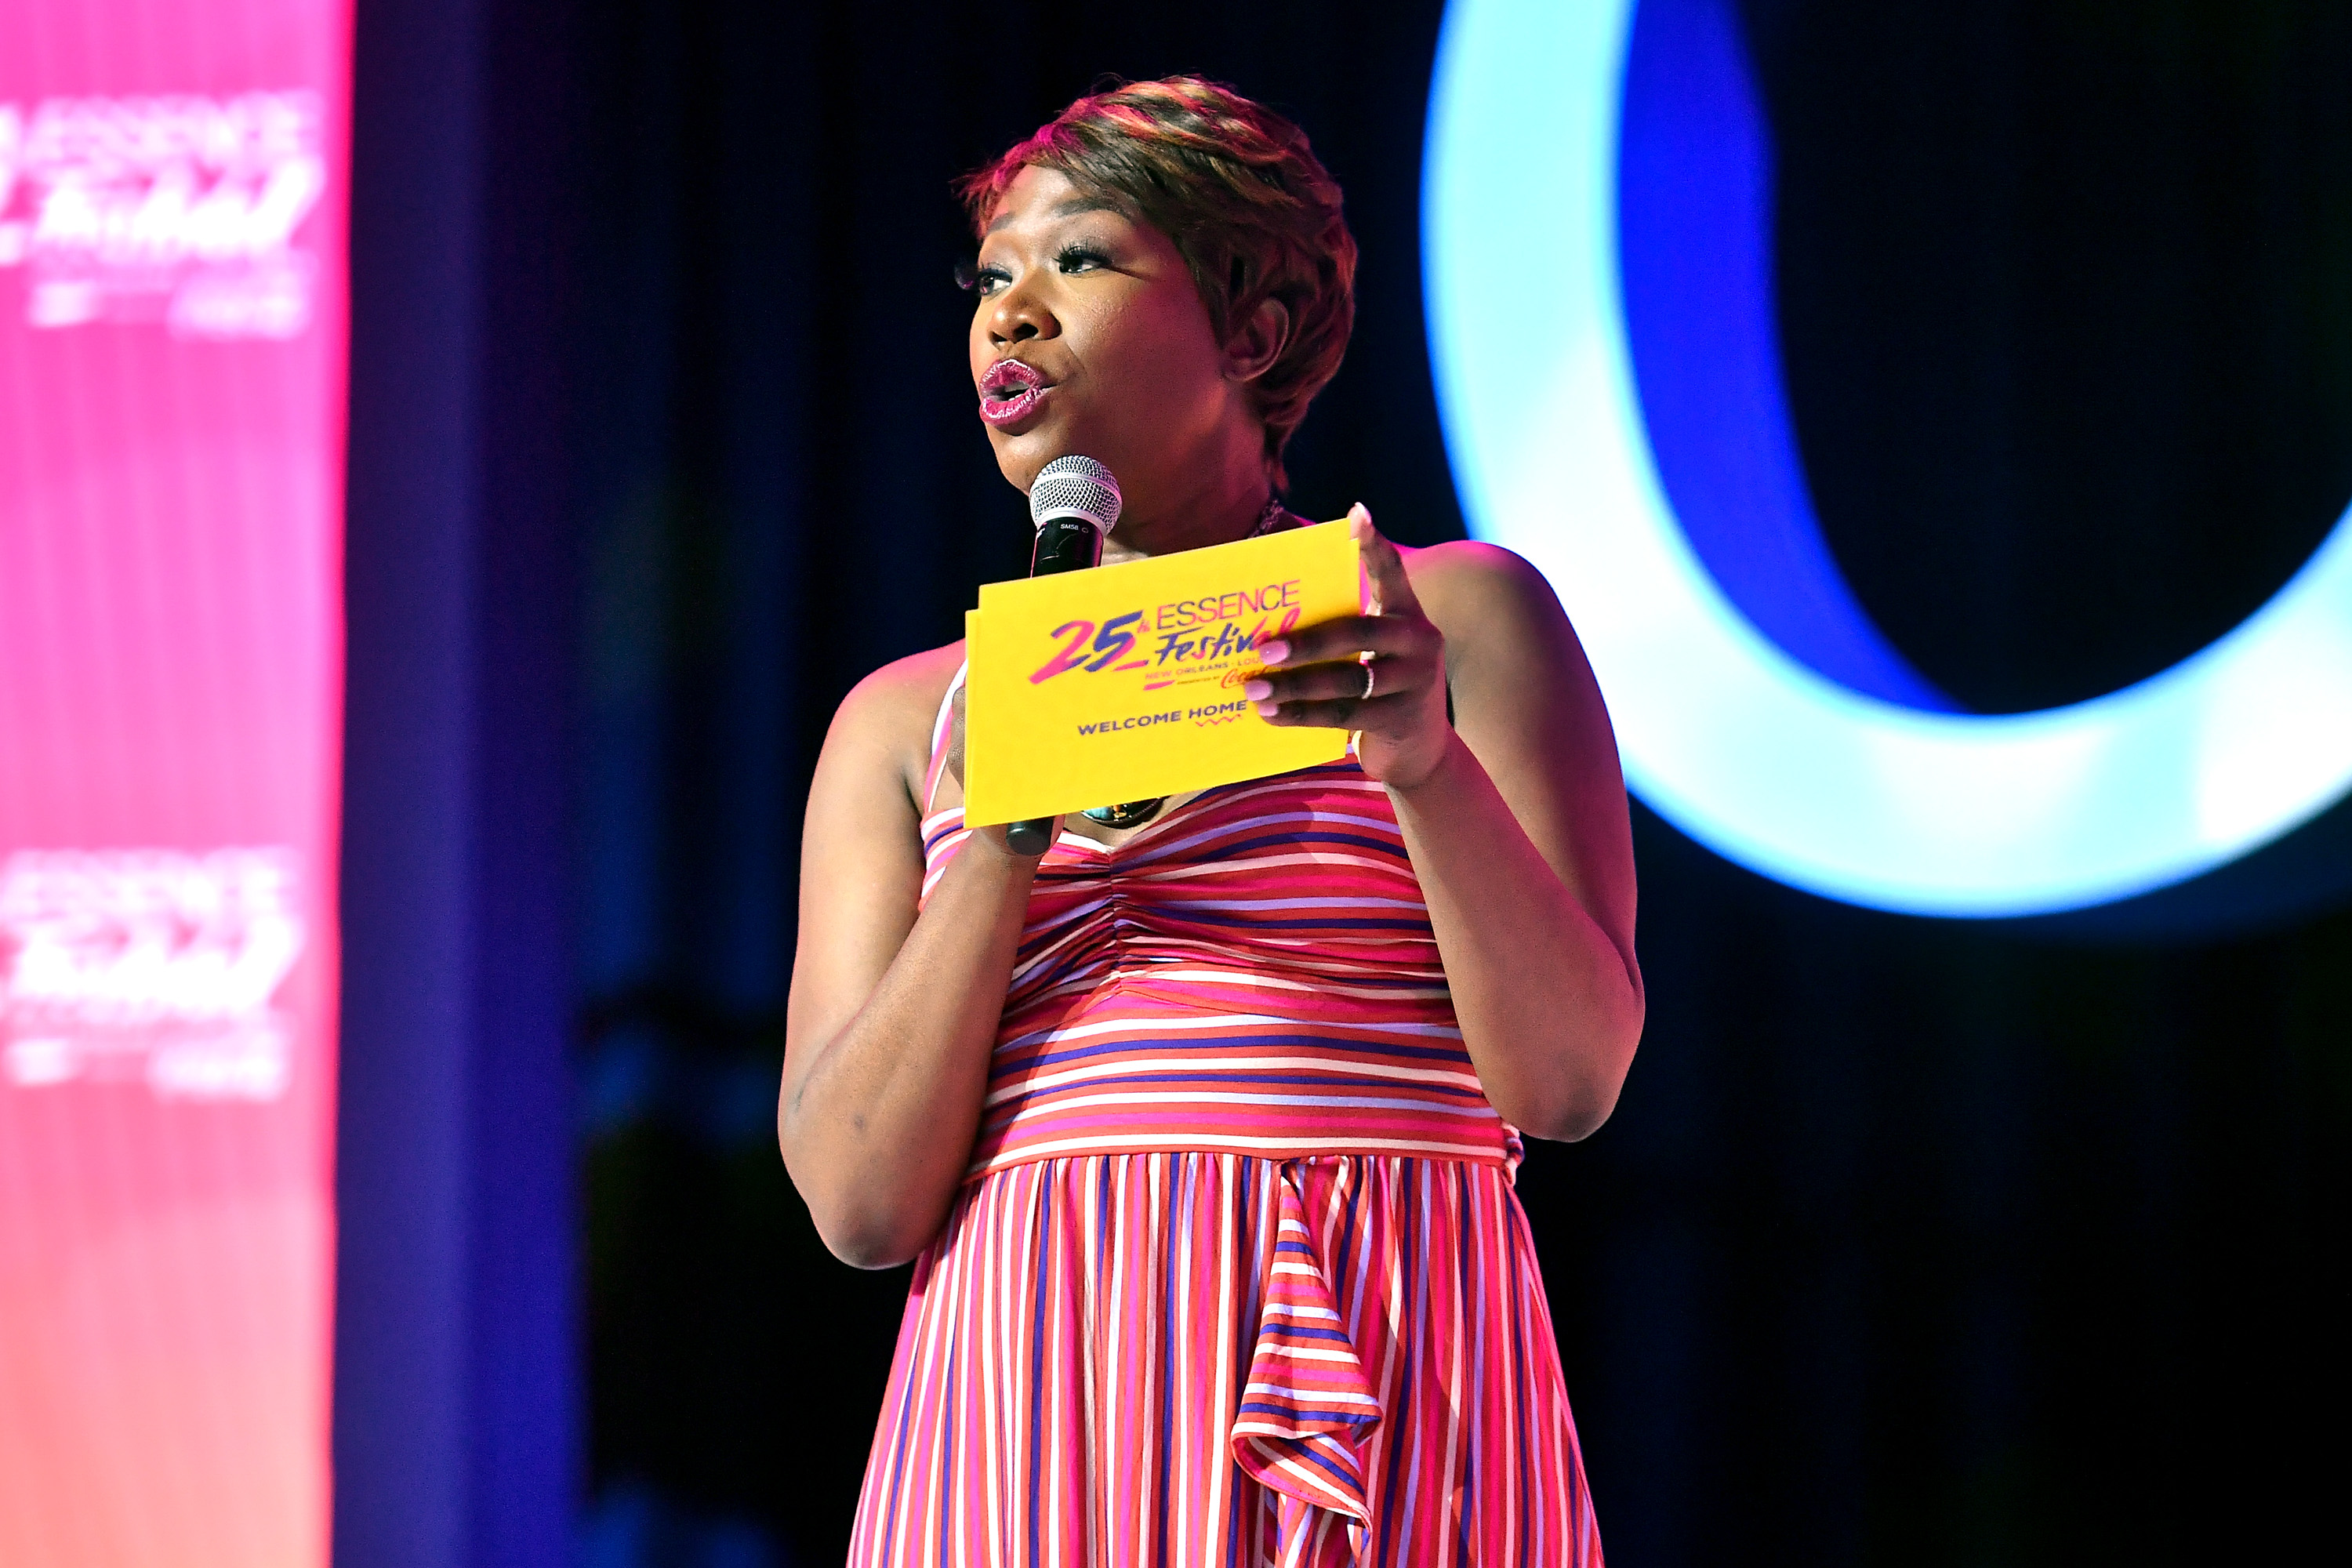 Joy-Ann Reid speaks on stage at 2019 ESSENCE Festival Presented By Coca-Cola at Ernest N. Morial Convention Center on July 05, 2019 in New Orleans, Louisiana. (Paras Griffin/Getty Images for ESSENCE)